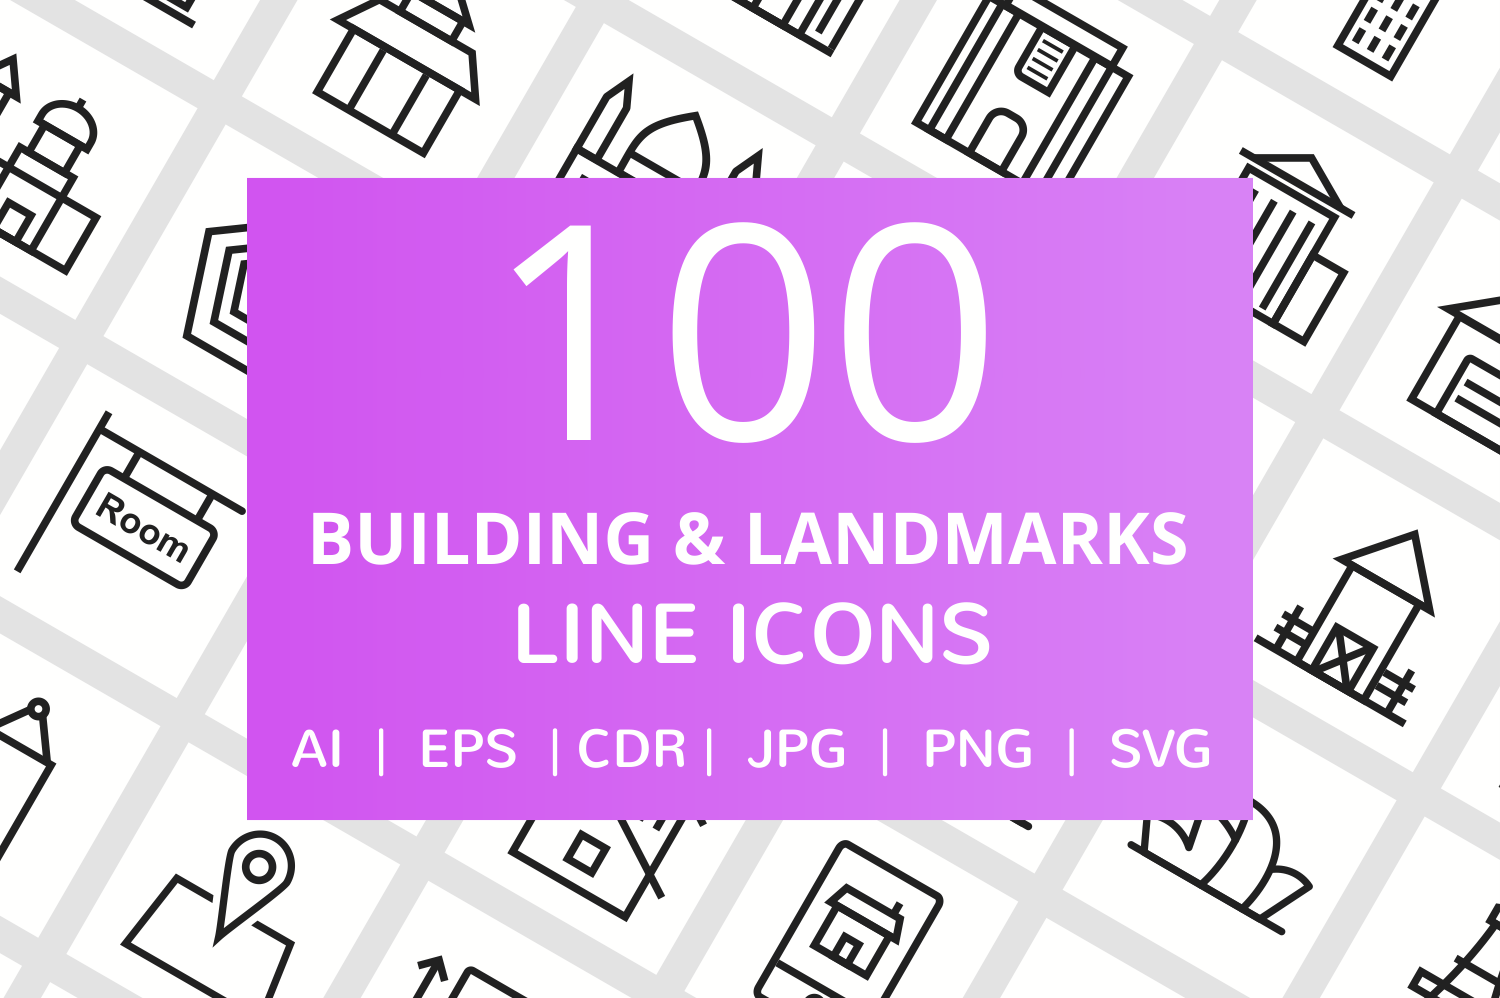 100 Building & Landmarks Line Icons example image 1